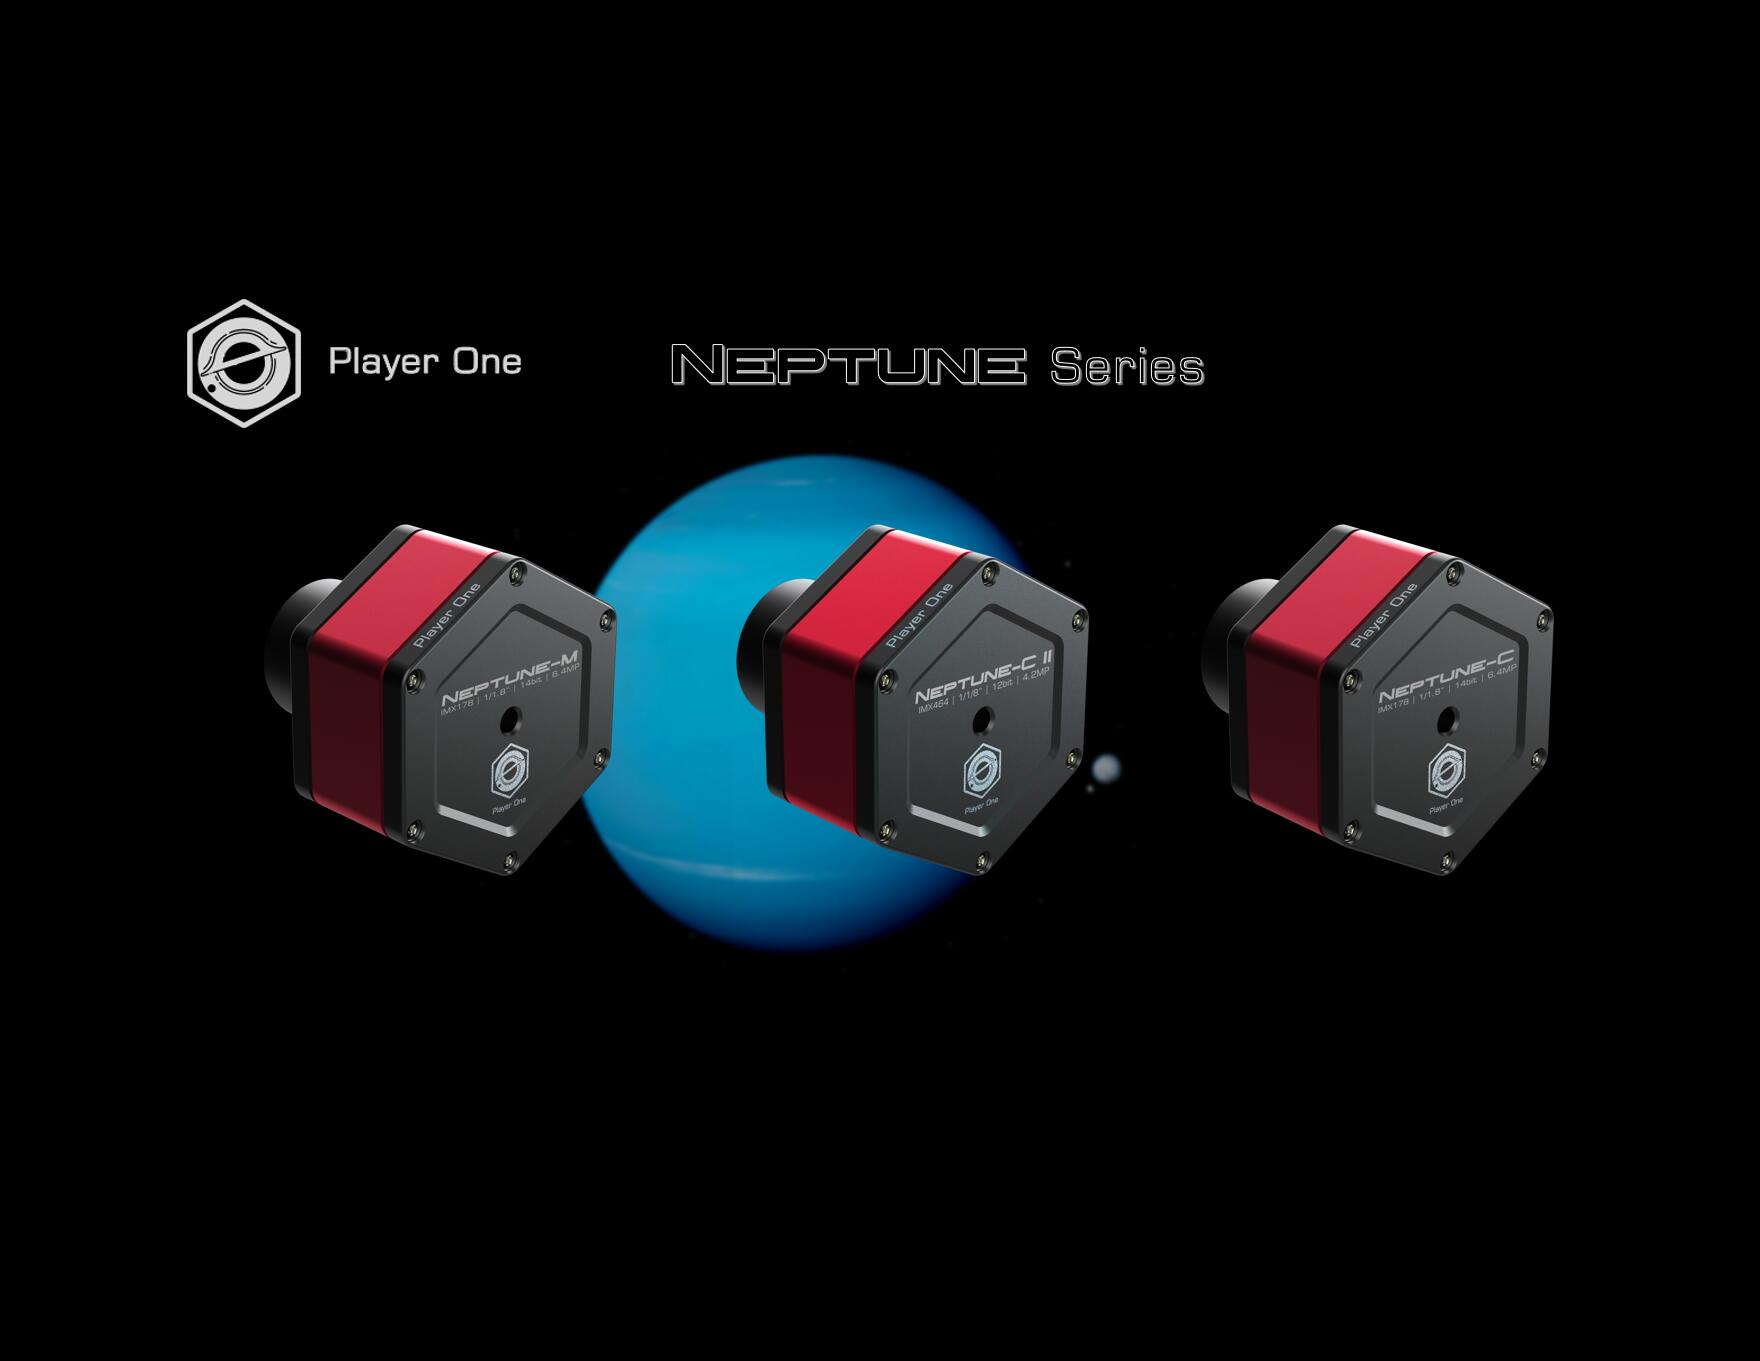 Neptune-C II and Neptune Camera series is released TODAY!